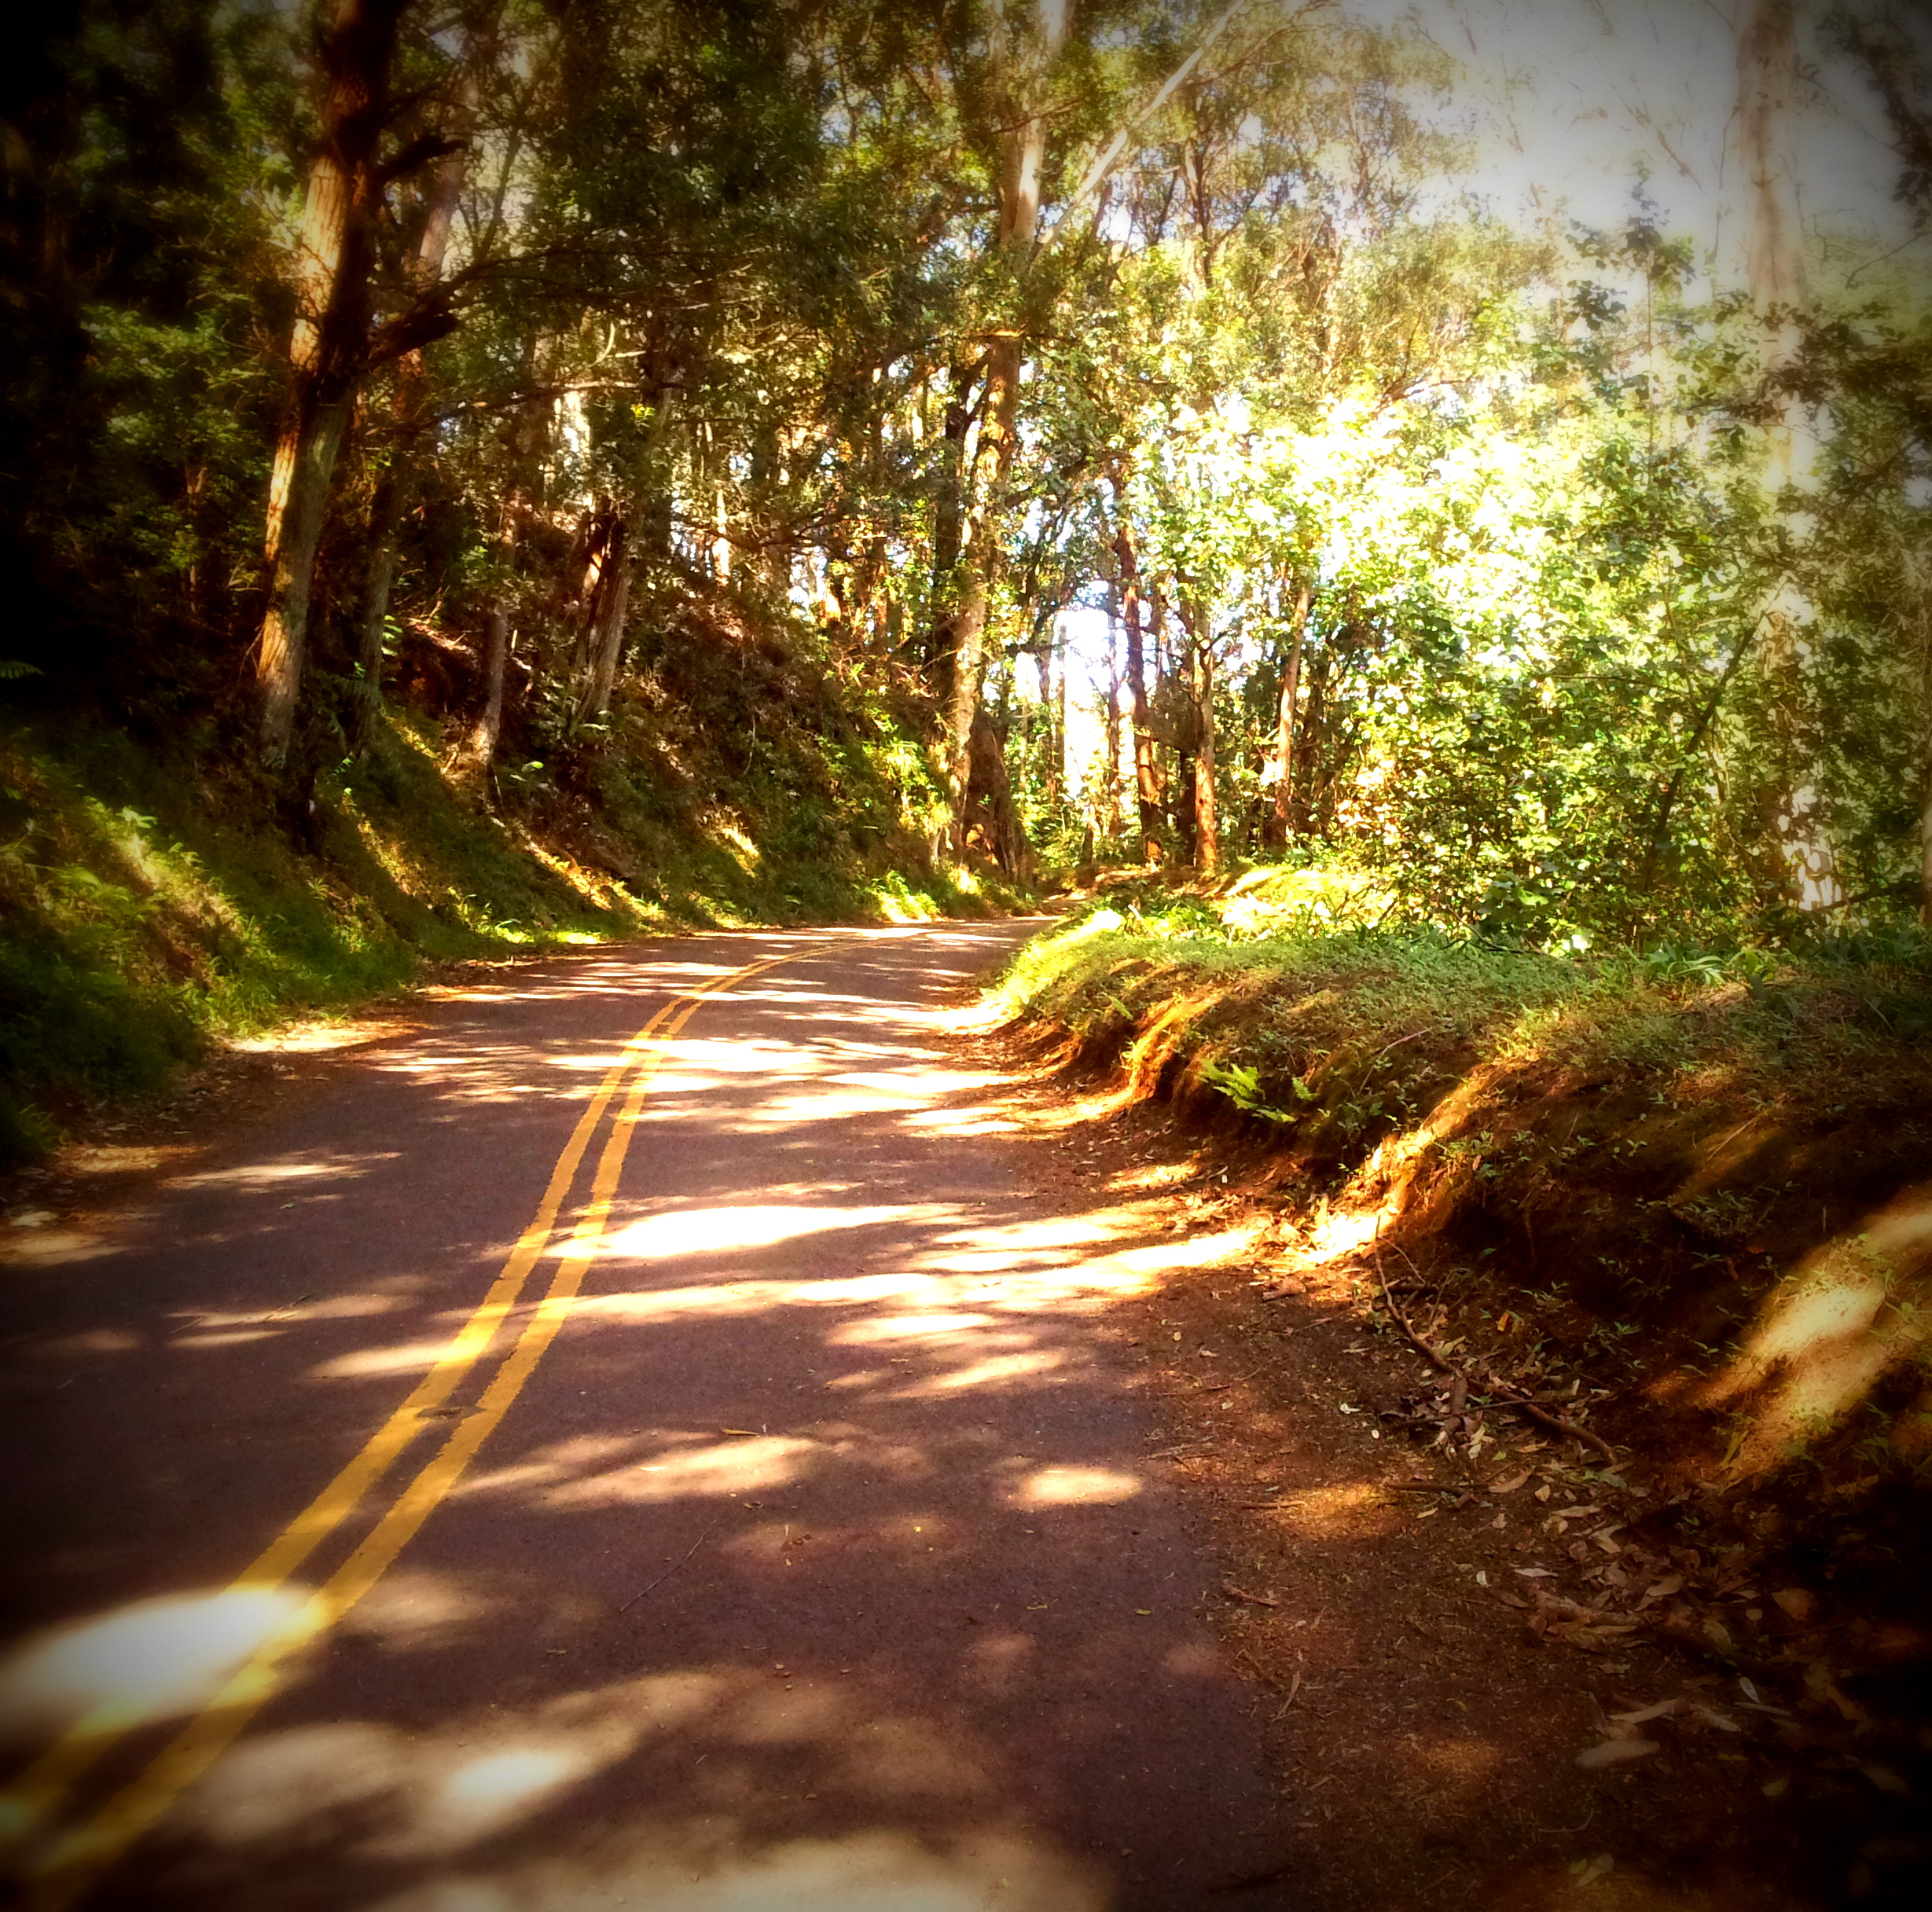 Haiku Rd is a sanctuary of a bypass off of Hana Hwy